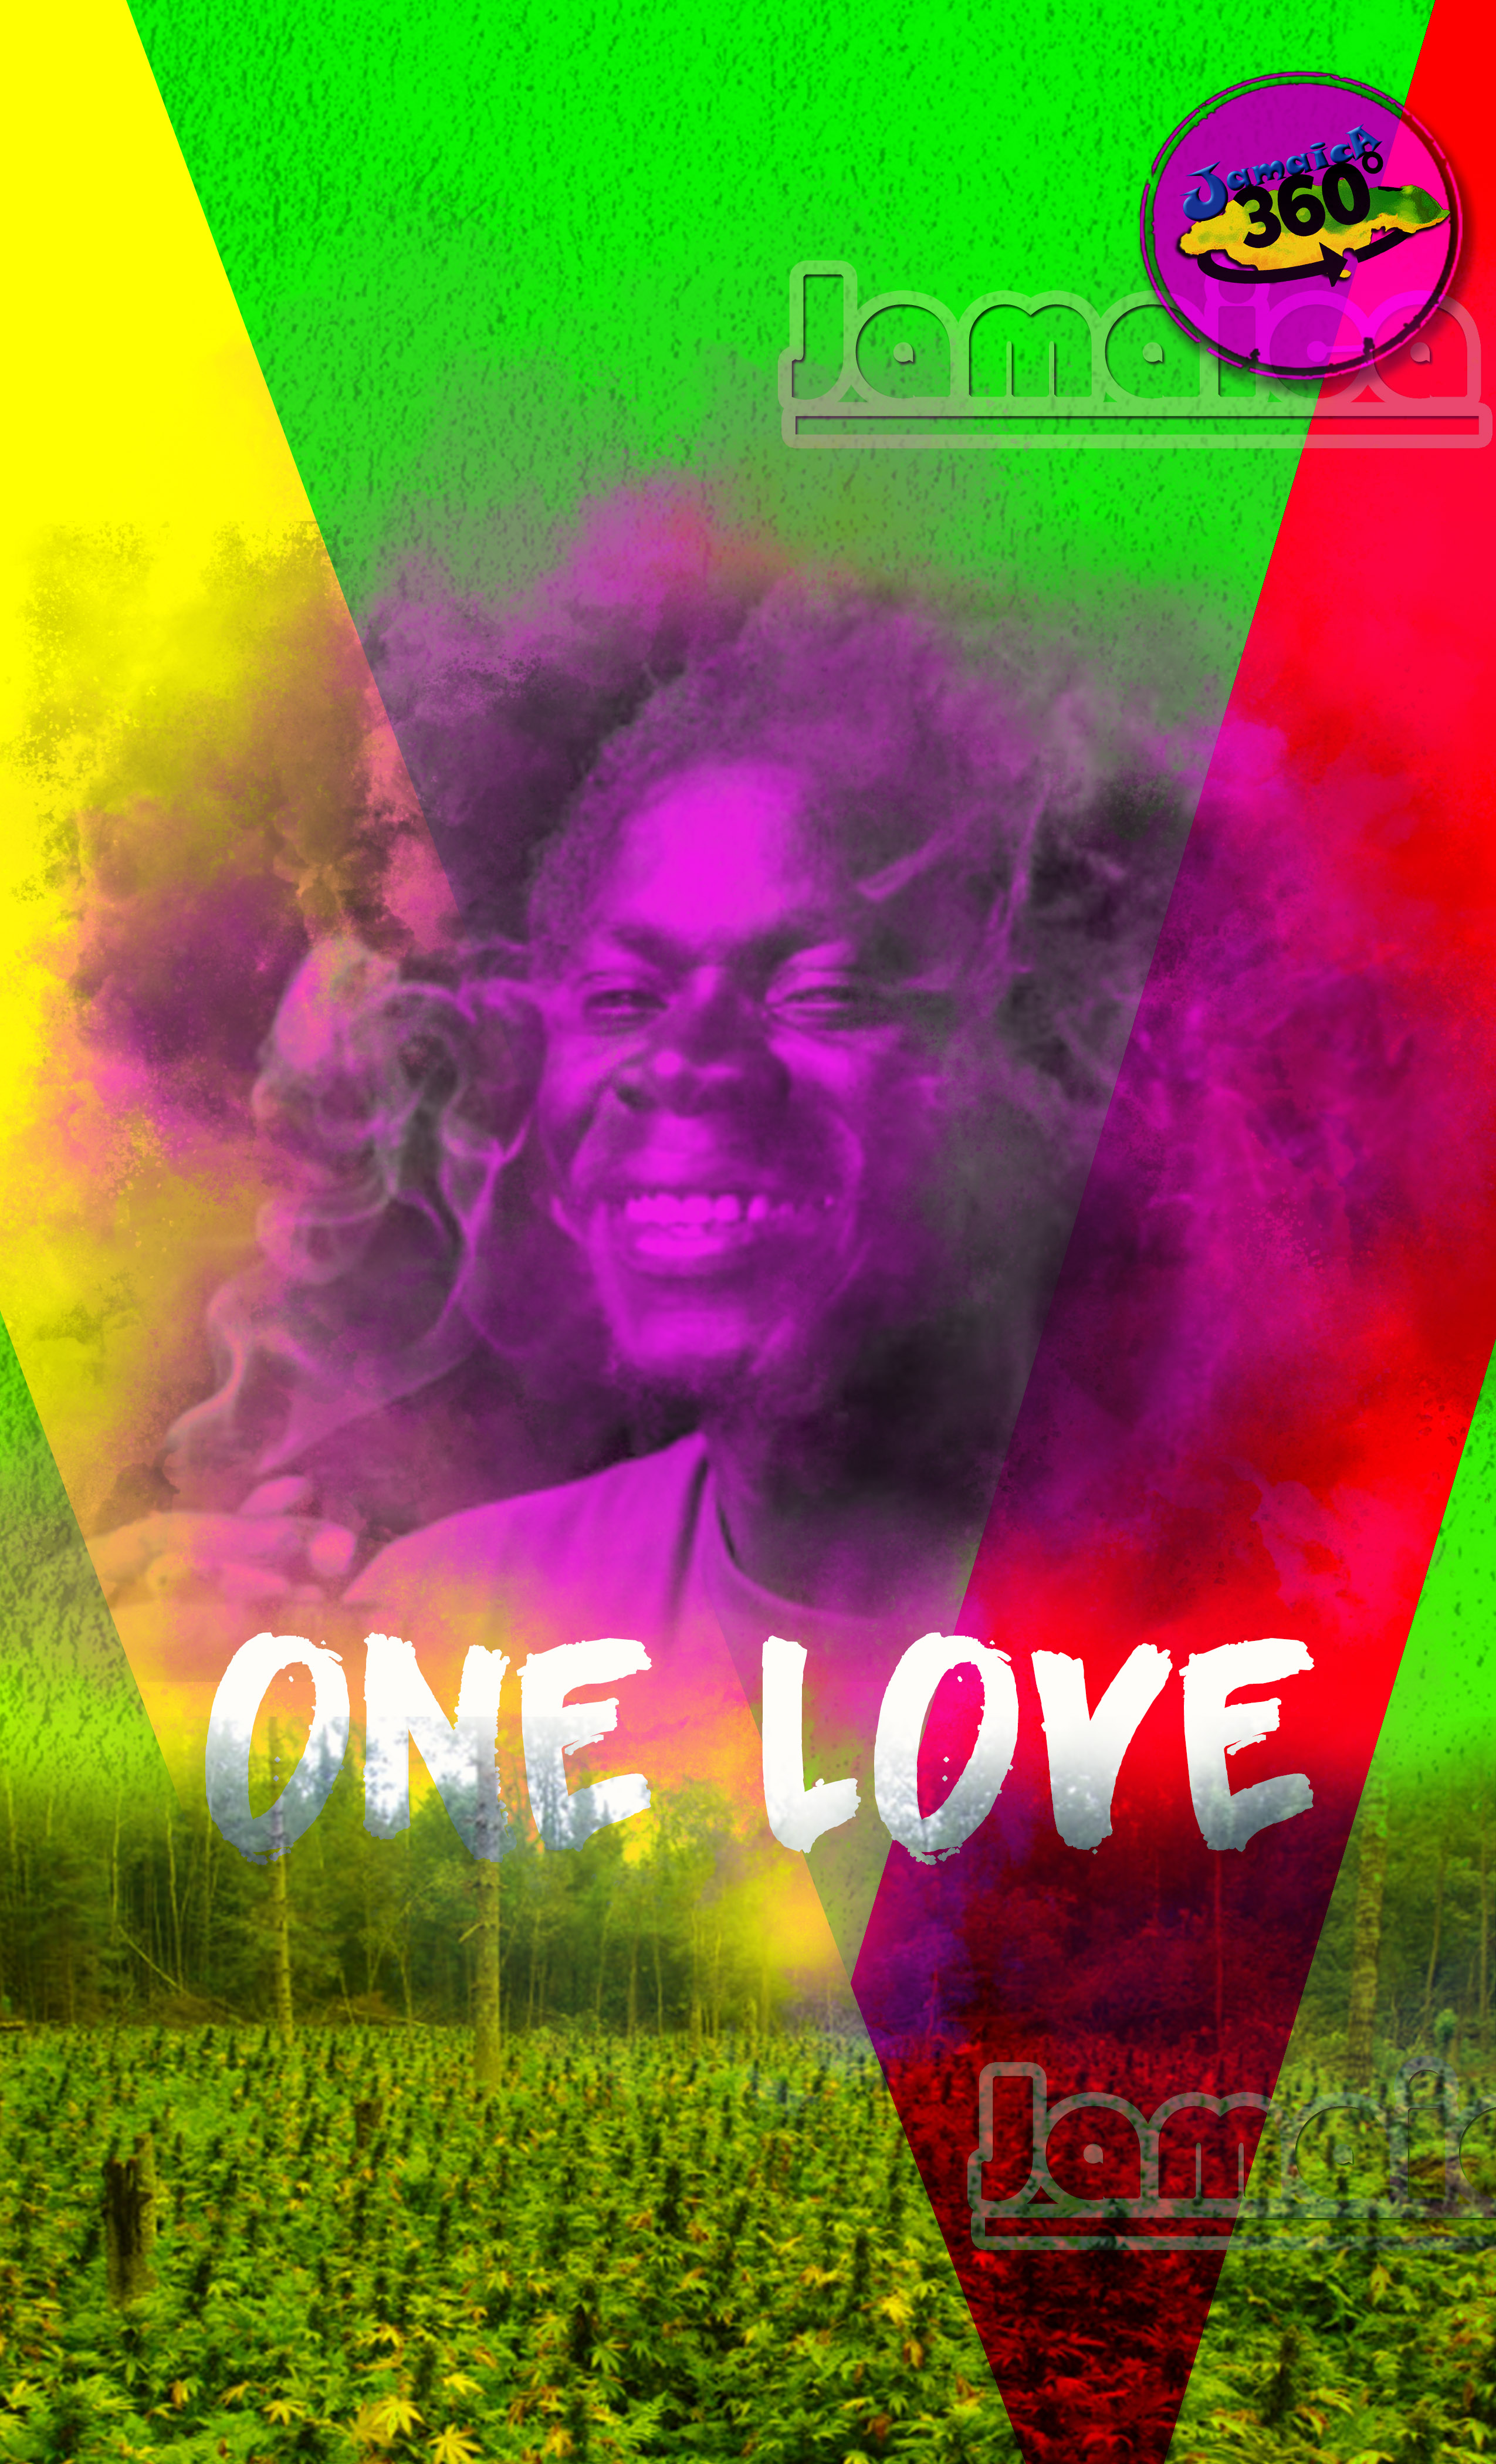 Rasta OneLove Wallpaper and poster